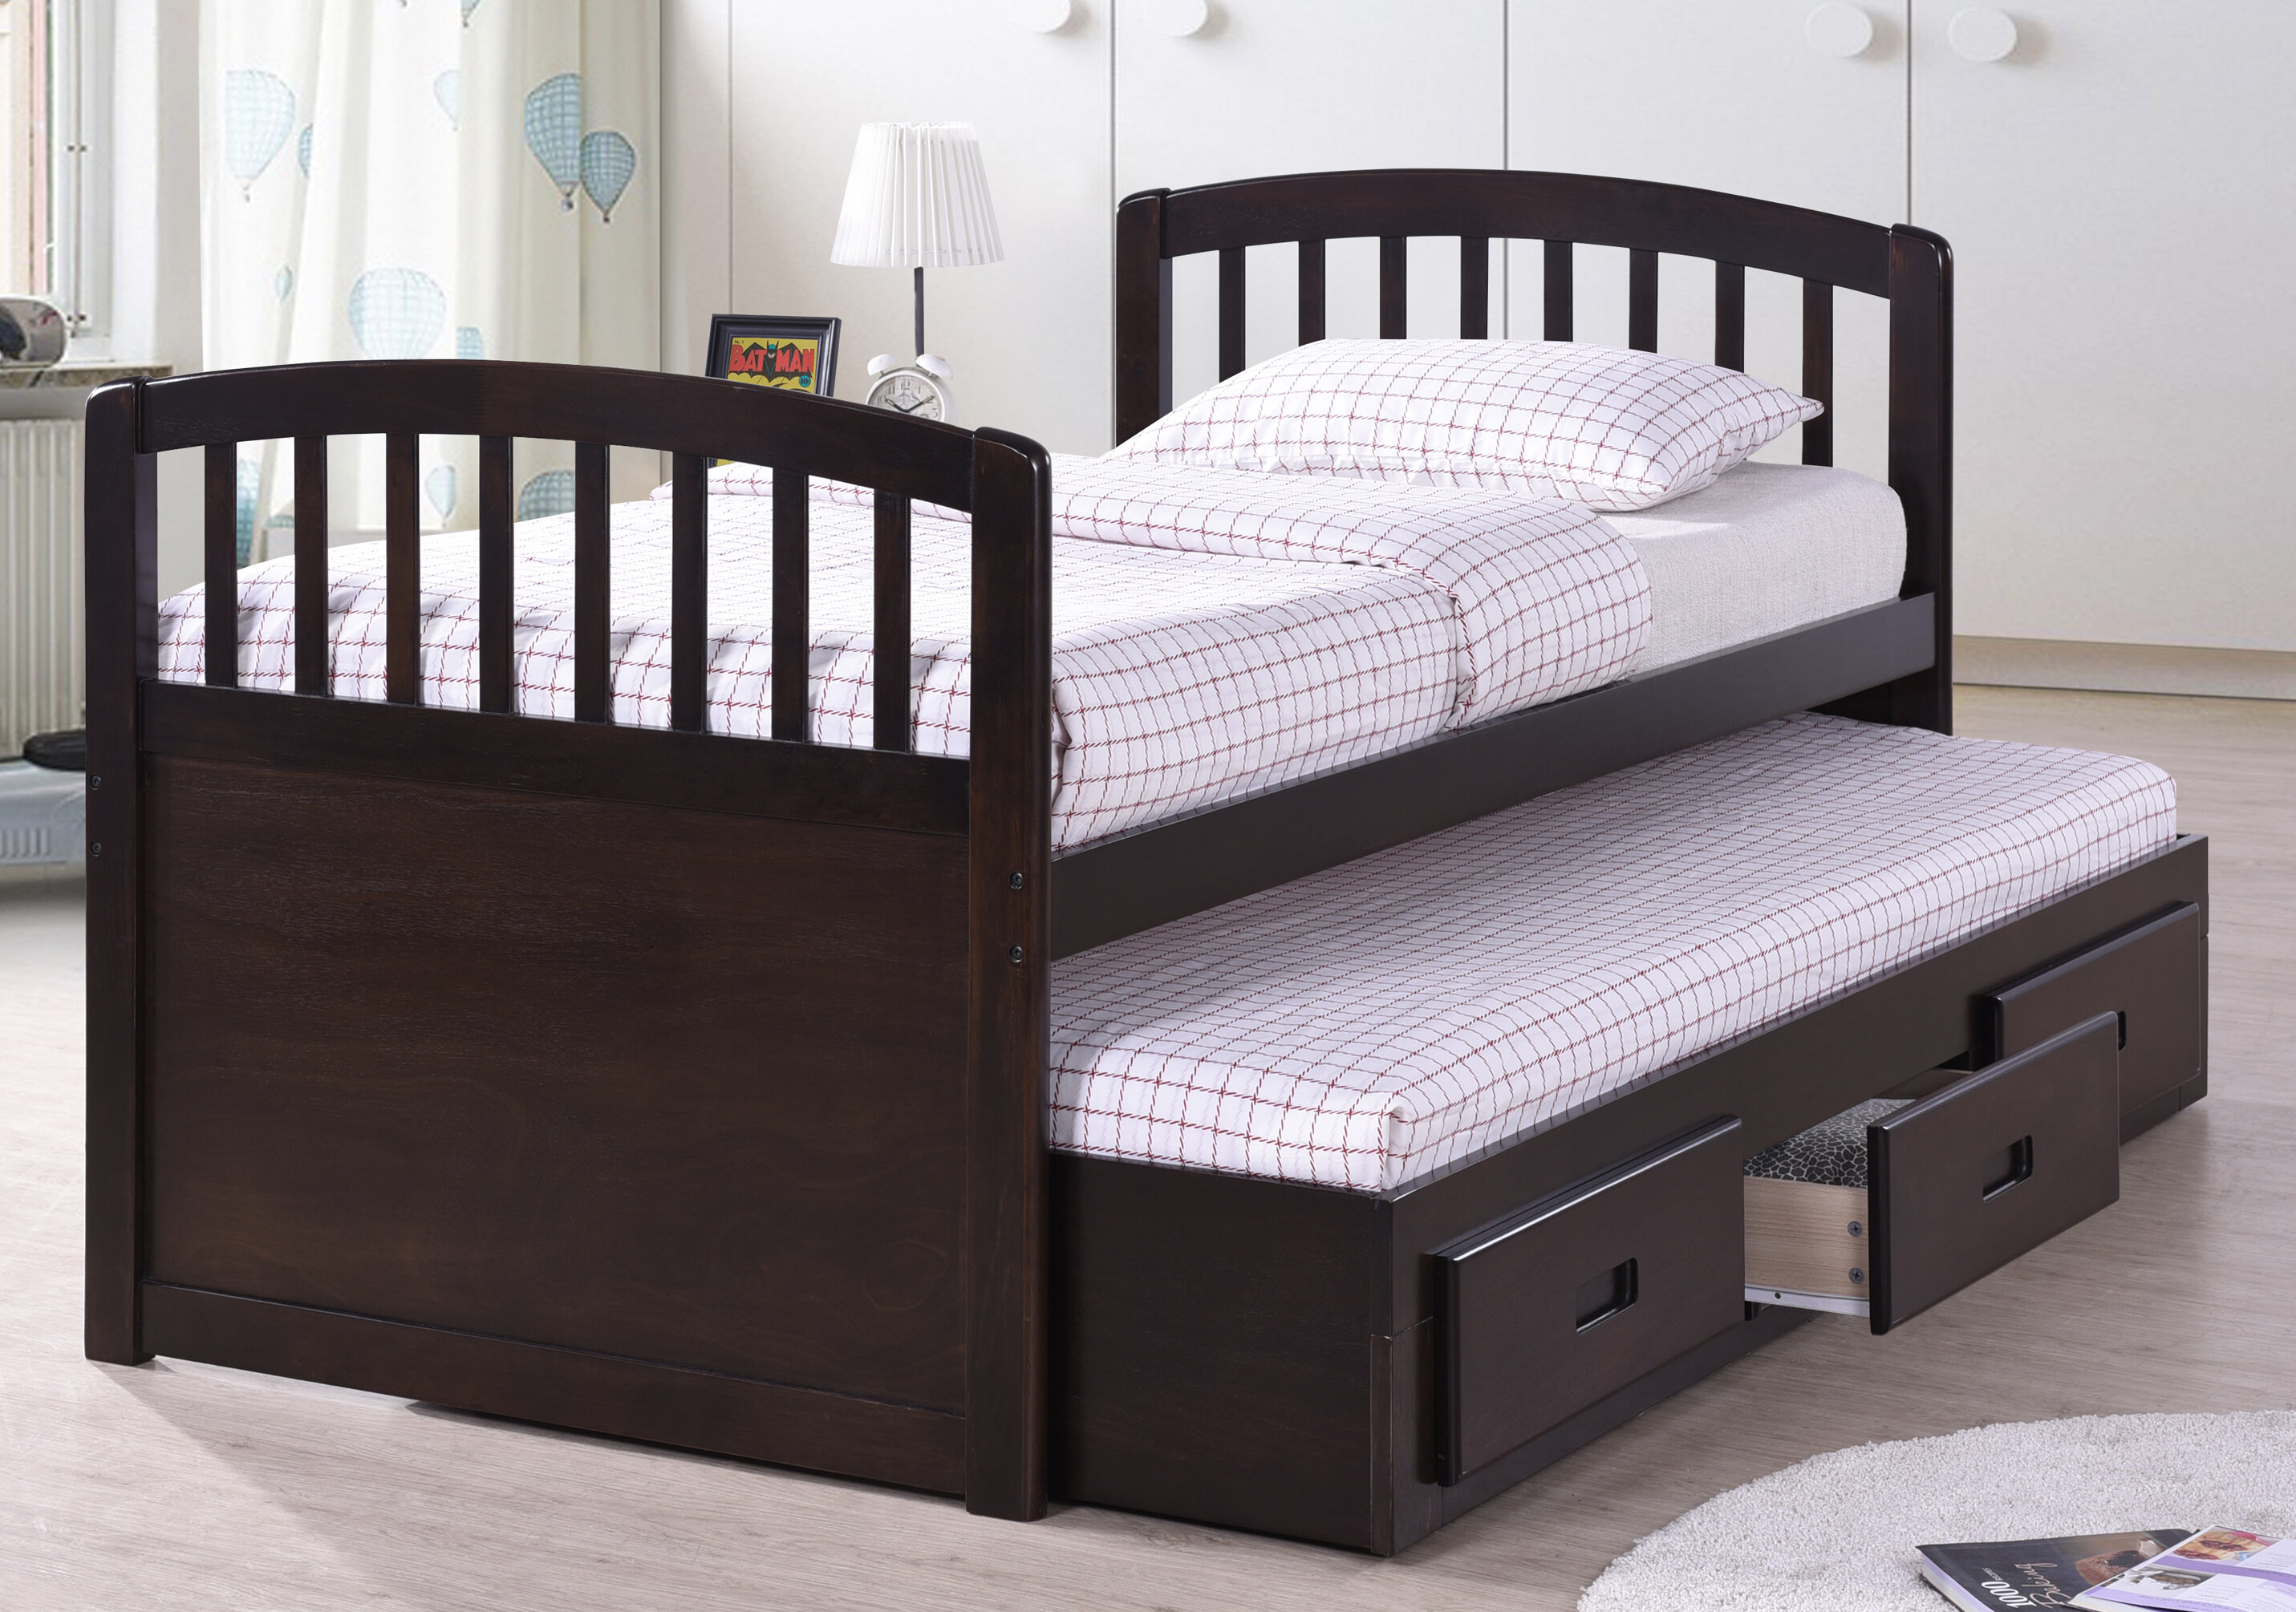 today home bed with product free shipping mobby shore drawers twin trundle overstock garden south